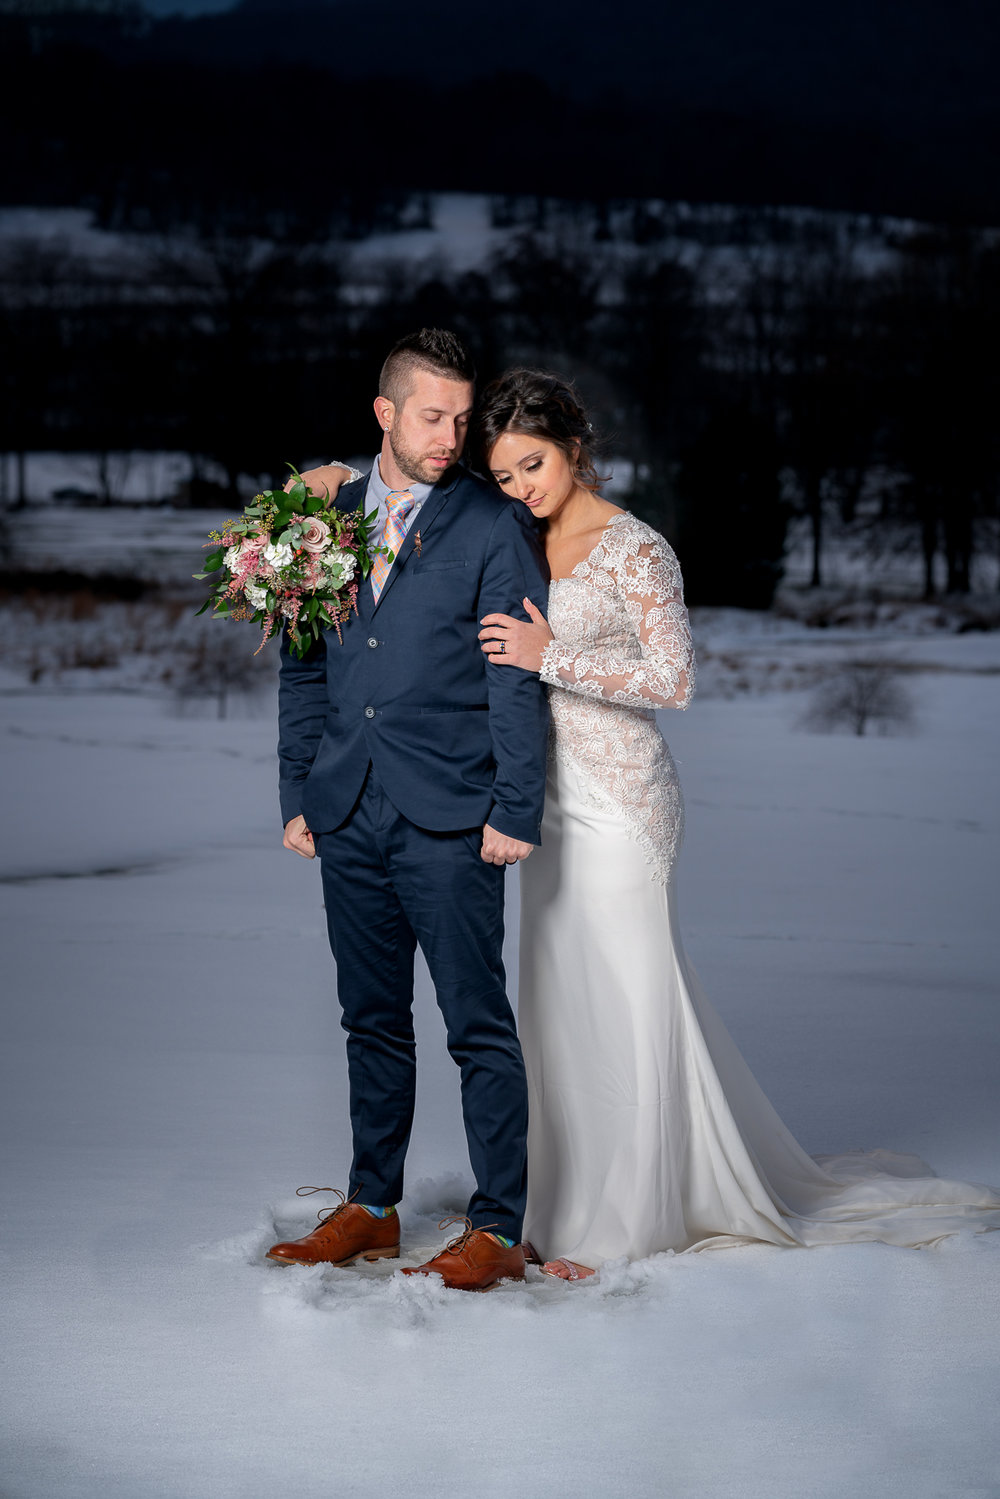 Our Snow Day Wedding at Liberty Mountain Resort